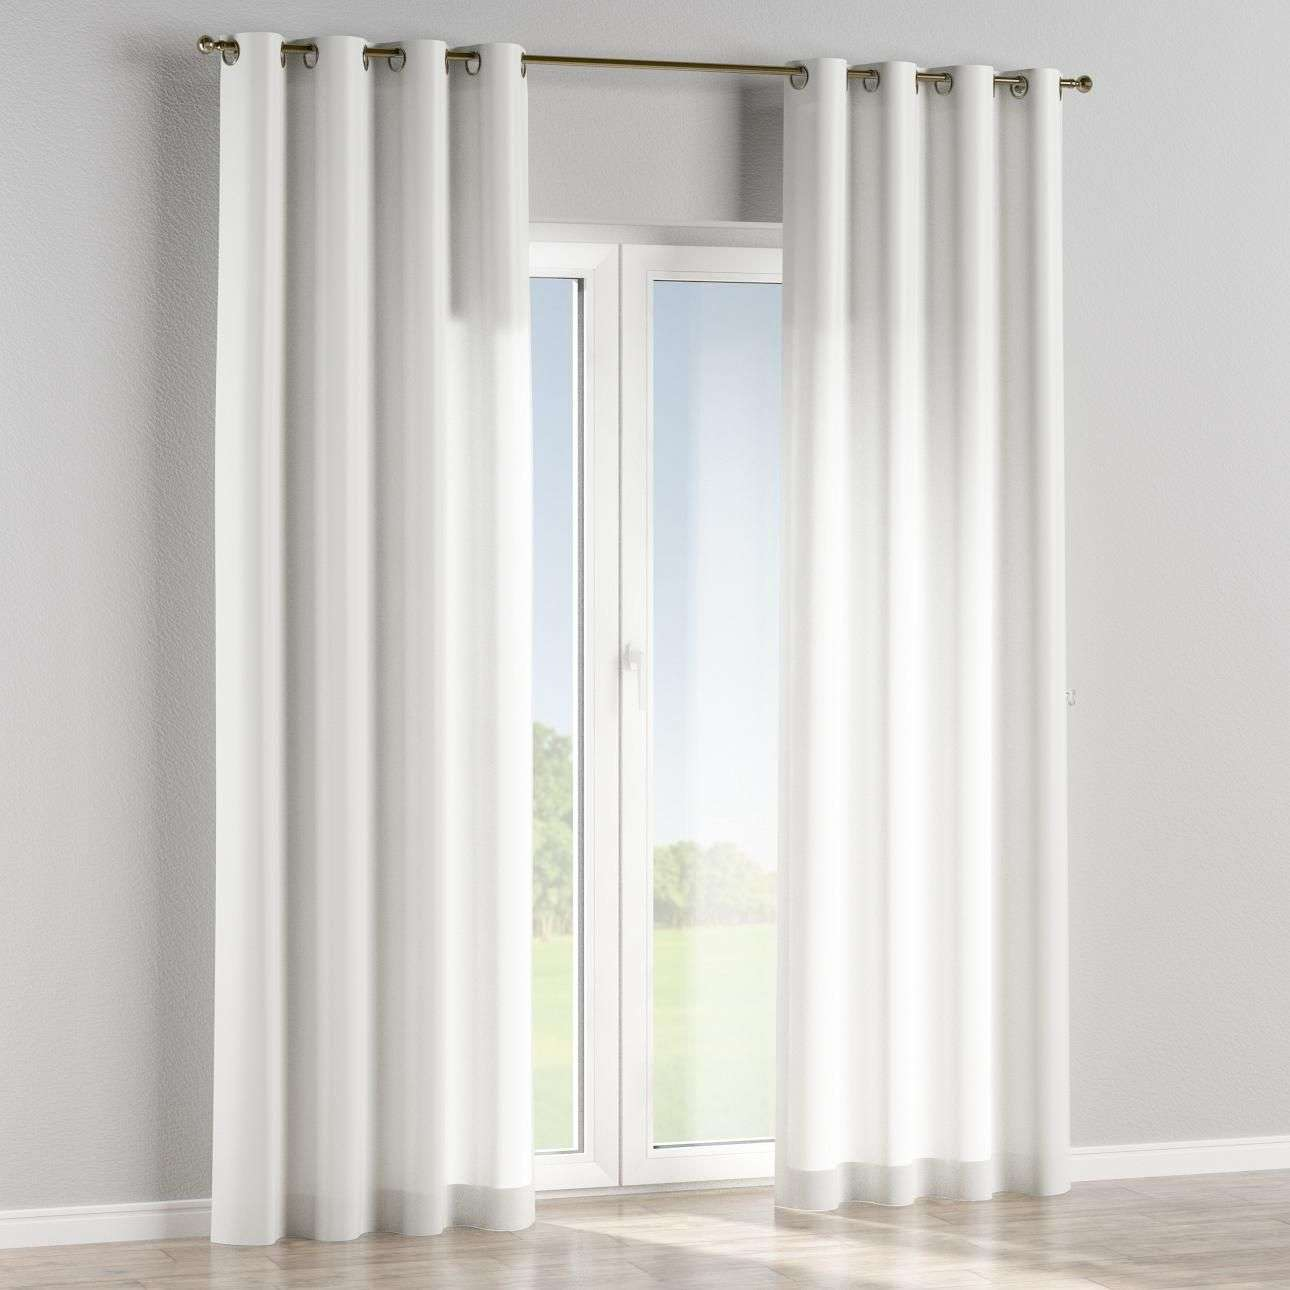 Eyelet lined curtains in collection Rustica, fabric: 140-58